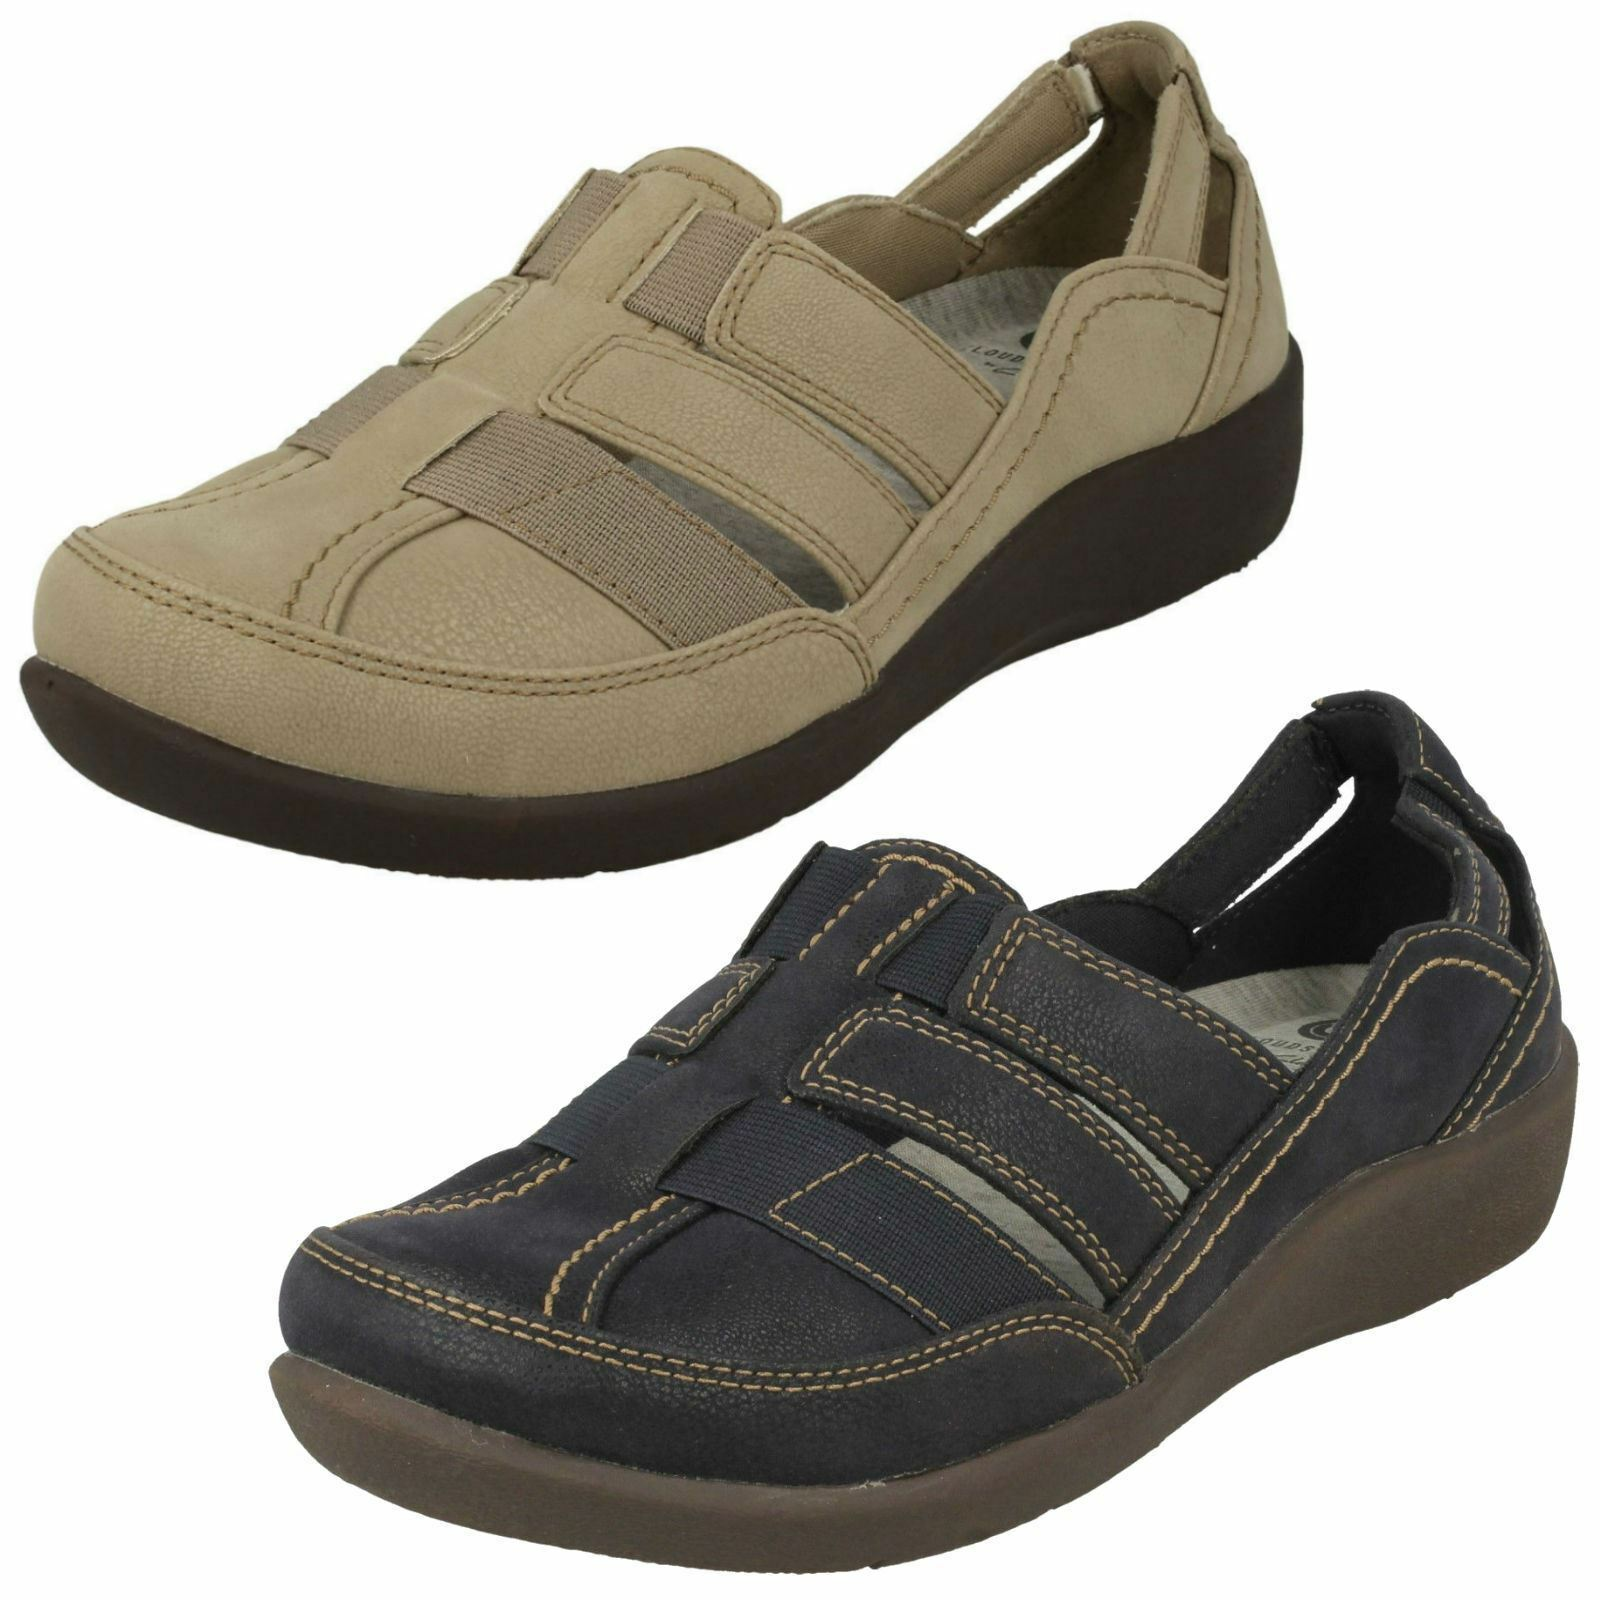 Ladies Clarks Cloud Steppers Sillian Stork Casual Shoes E Fitting